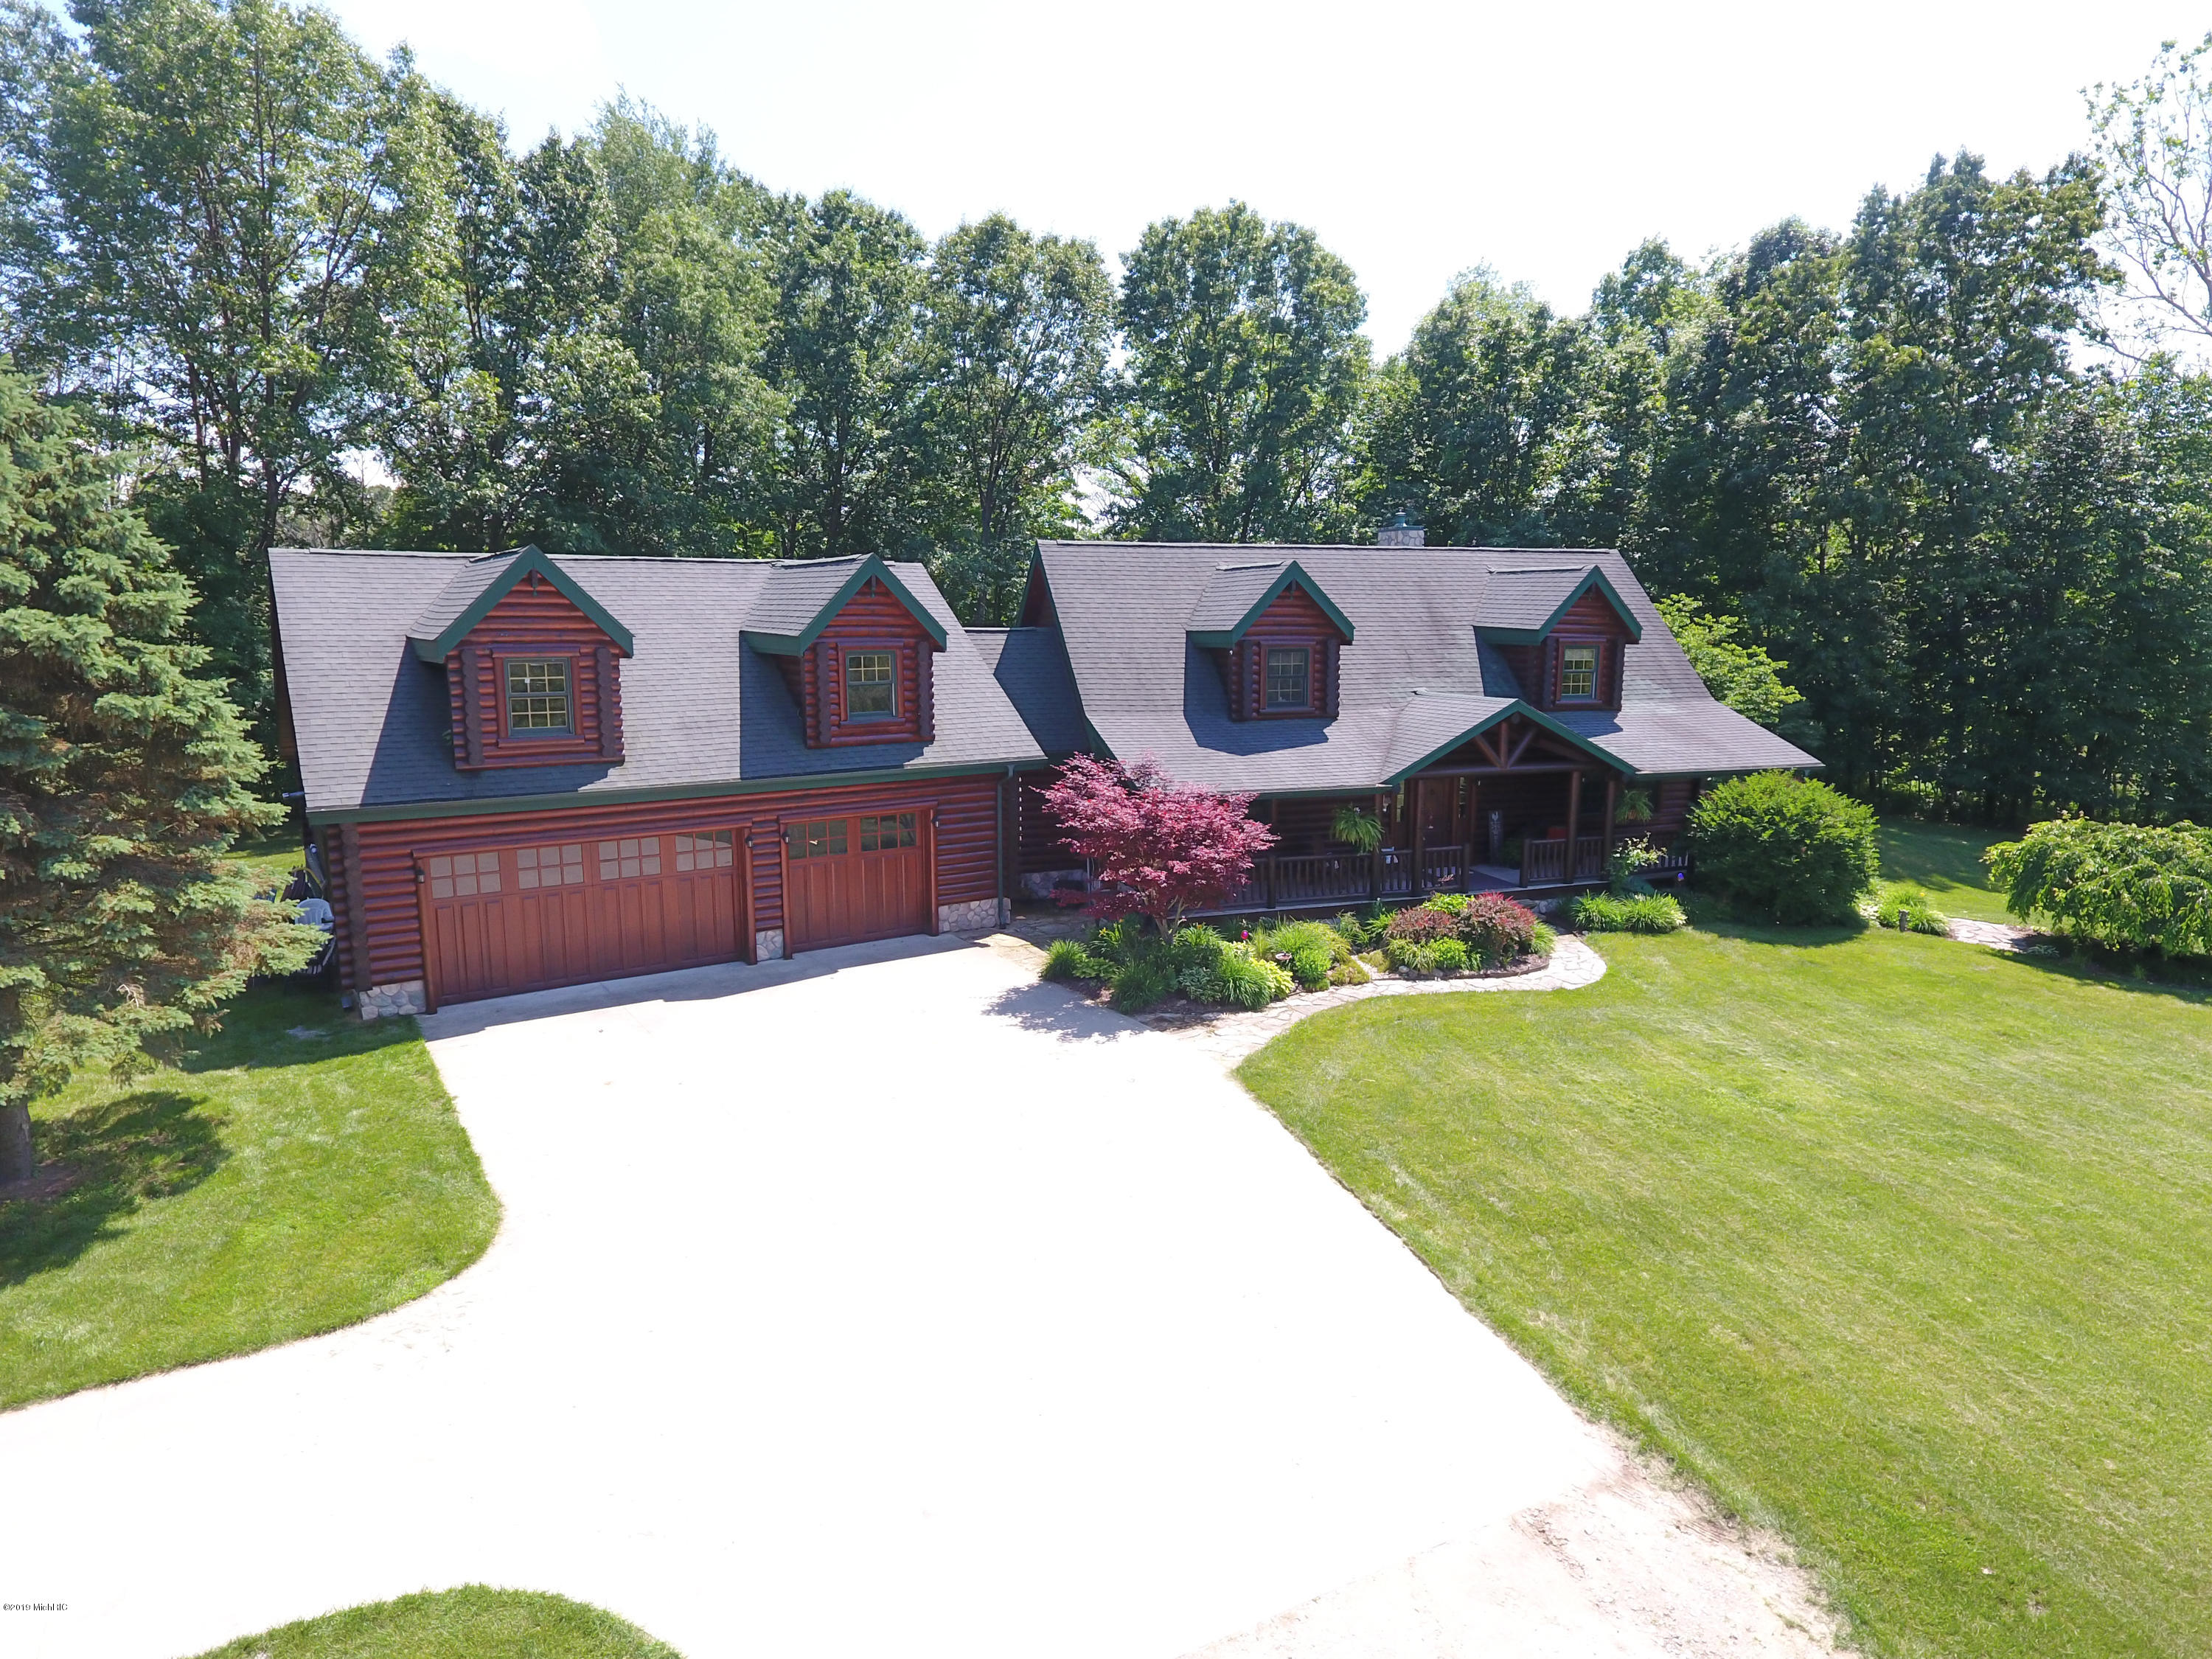 Photo for 40285 M40 Highway, Paw Paw, MI 49079 (MLS # 19030073)